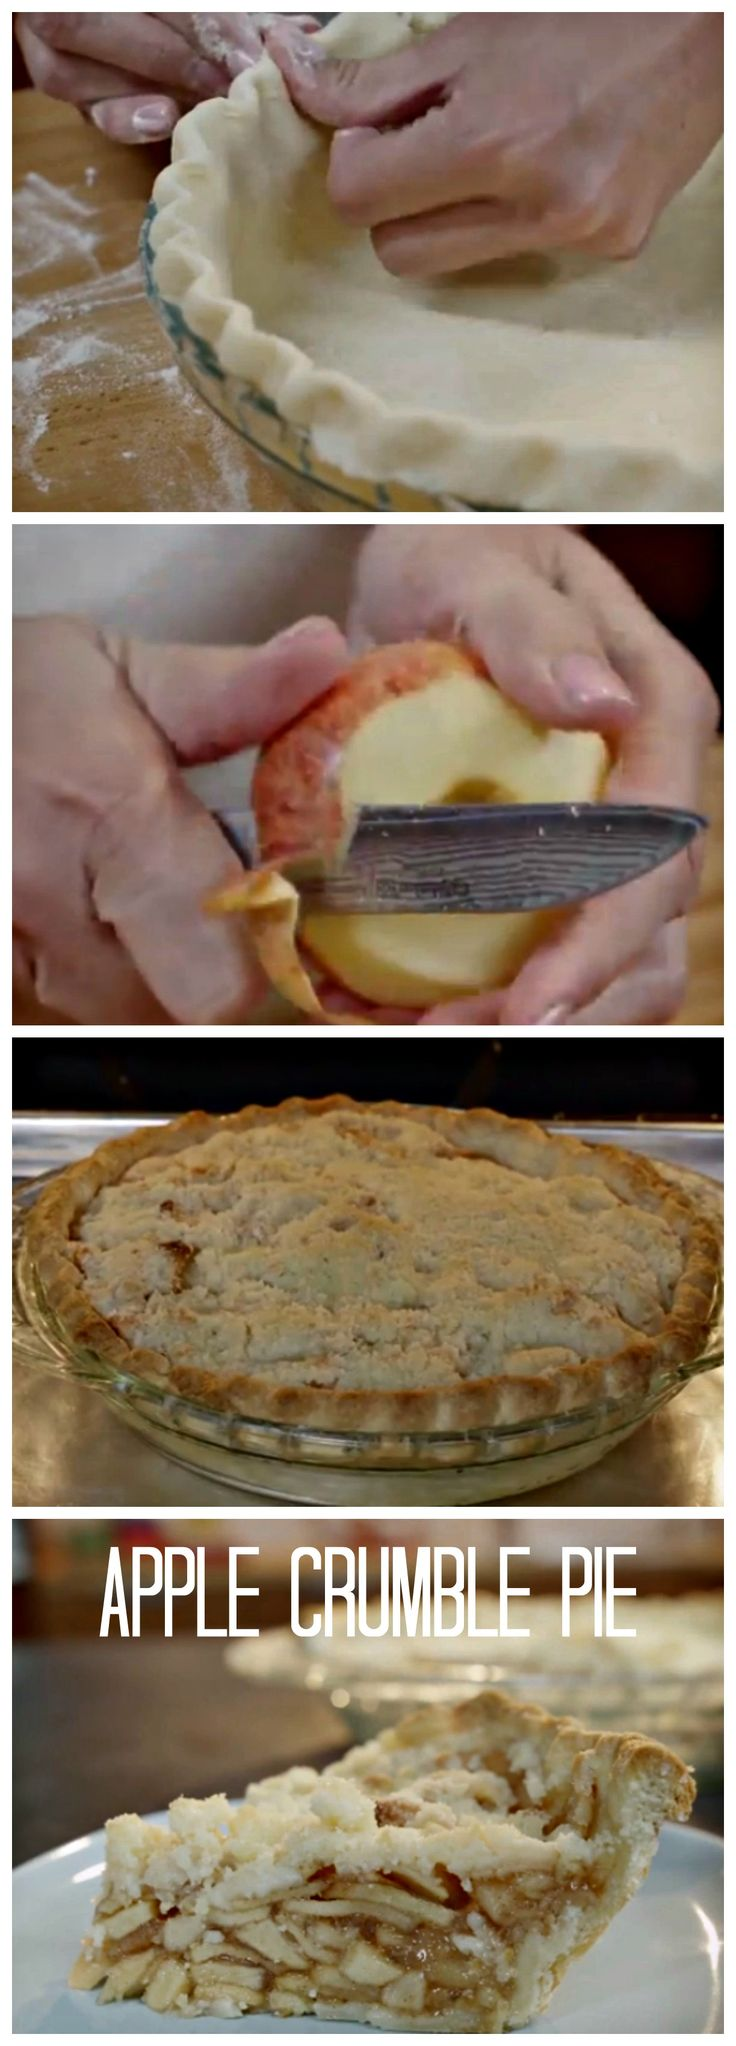 Apple Crumble Pie. Apple Crumble or Apple Pie? Why not have both? #Apple #Pie #Crumble